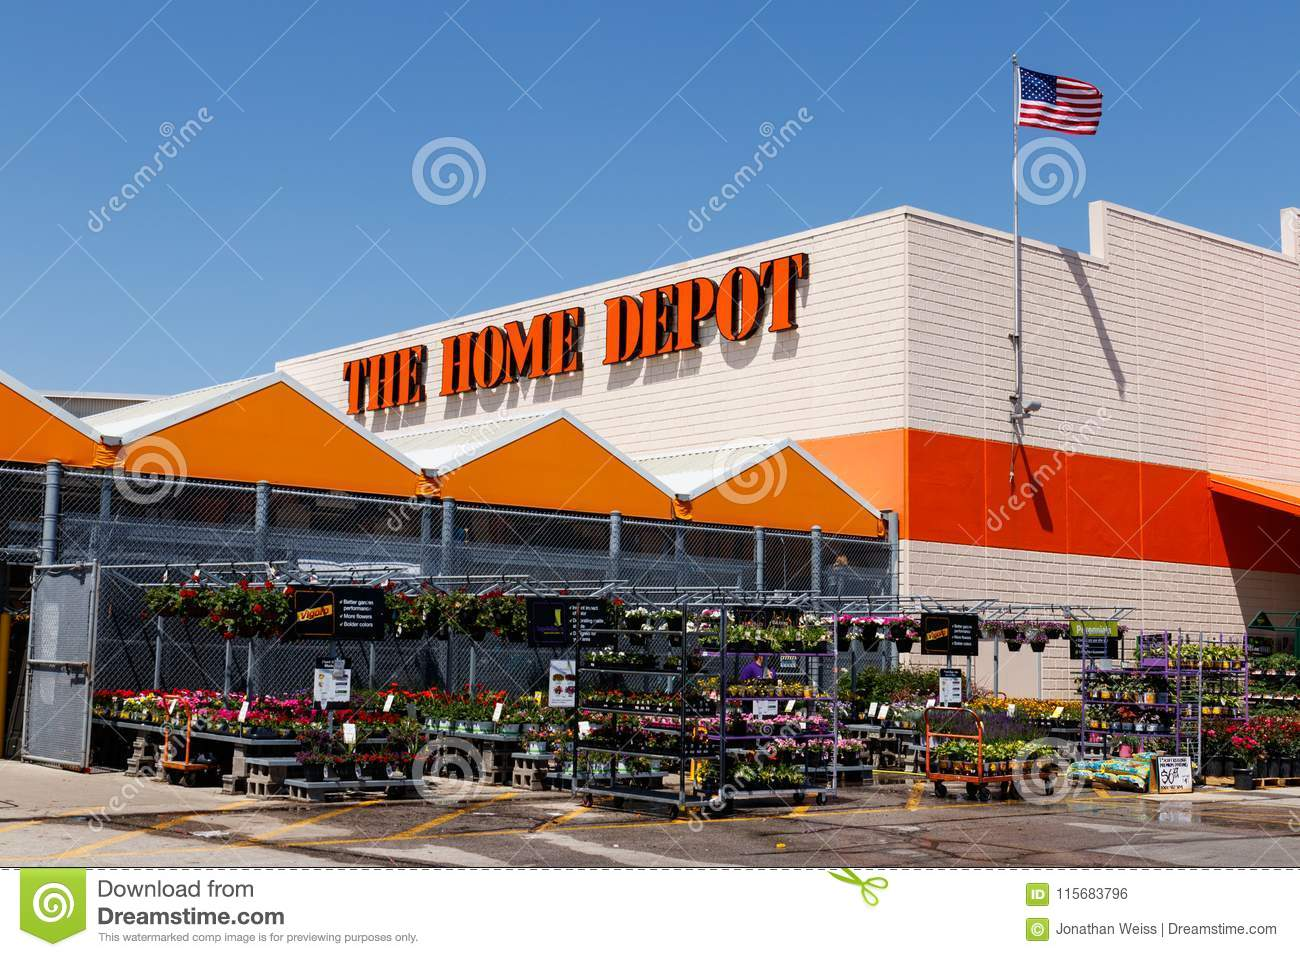 Indianapolis - Circa May 2018: Home Depot Location flying the American flag. Home Depot is the Largest Home Improvement Retailer I